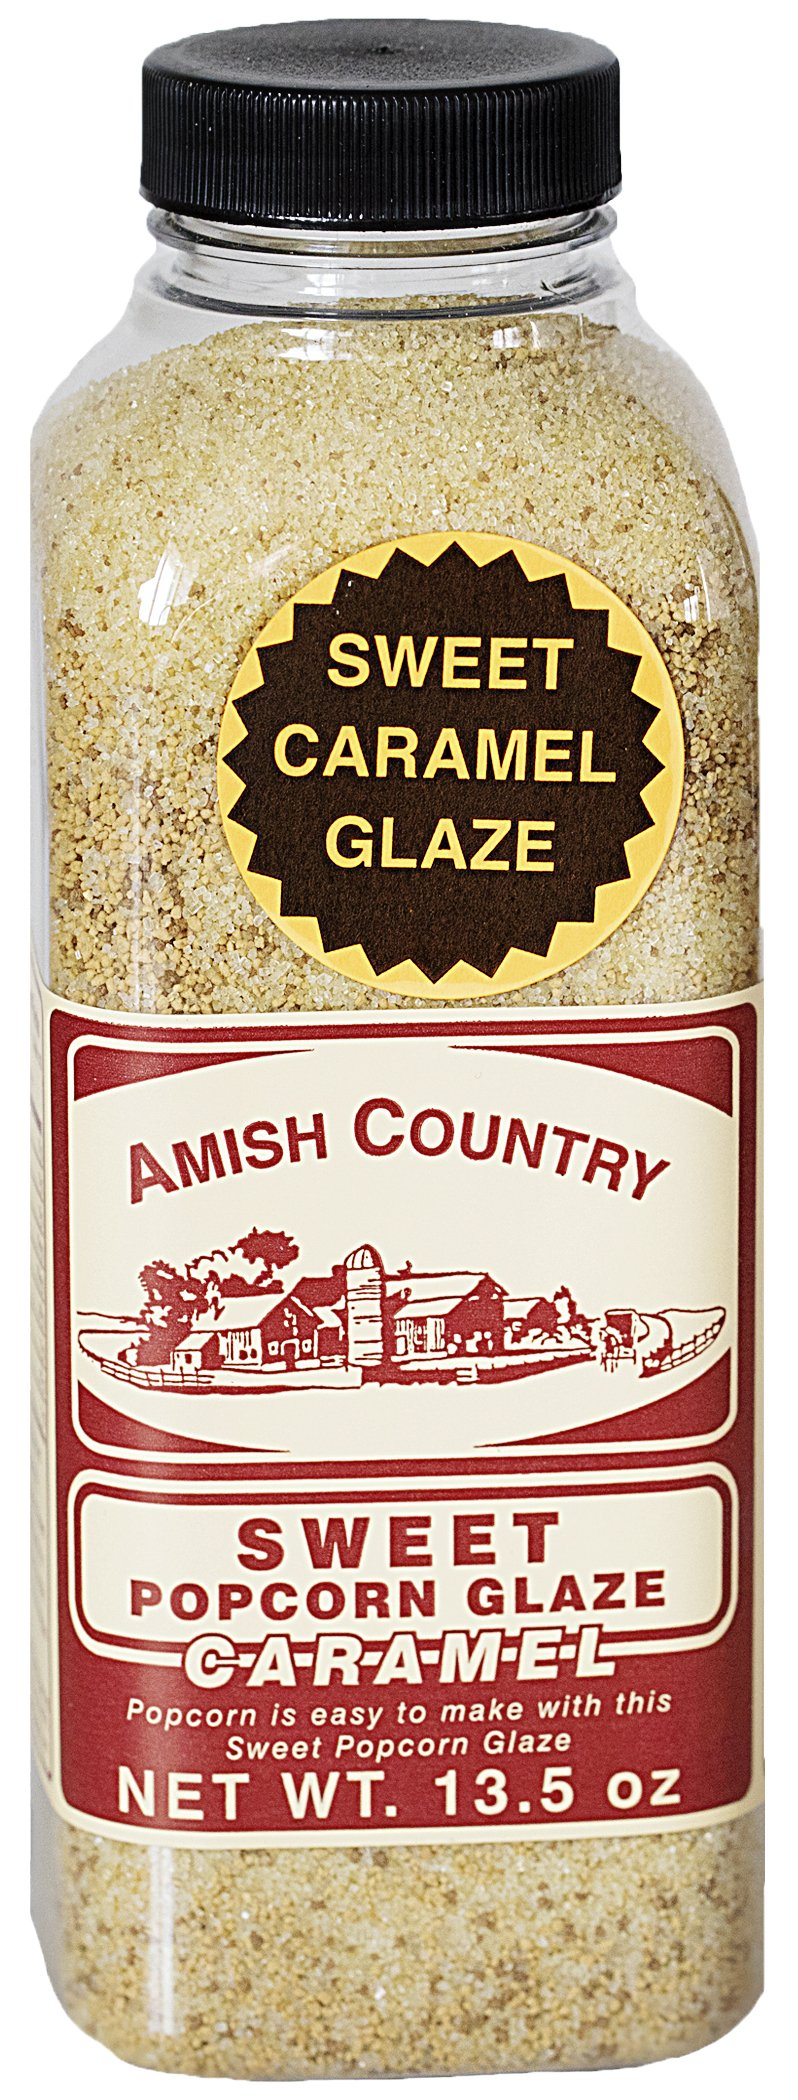 Amish Country Popcorn - Sweet Caramel Glaze - 13.5 oz - Great Tasting and Old Fashioned Sweet Treat - with Recipe Guide and 1 Year Freshness Guarantee